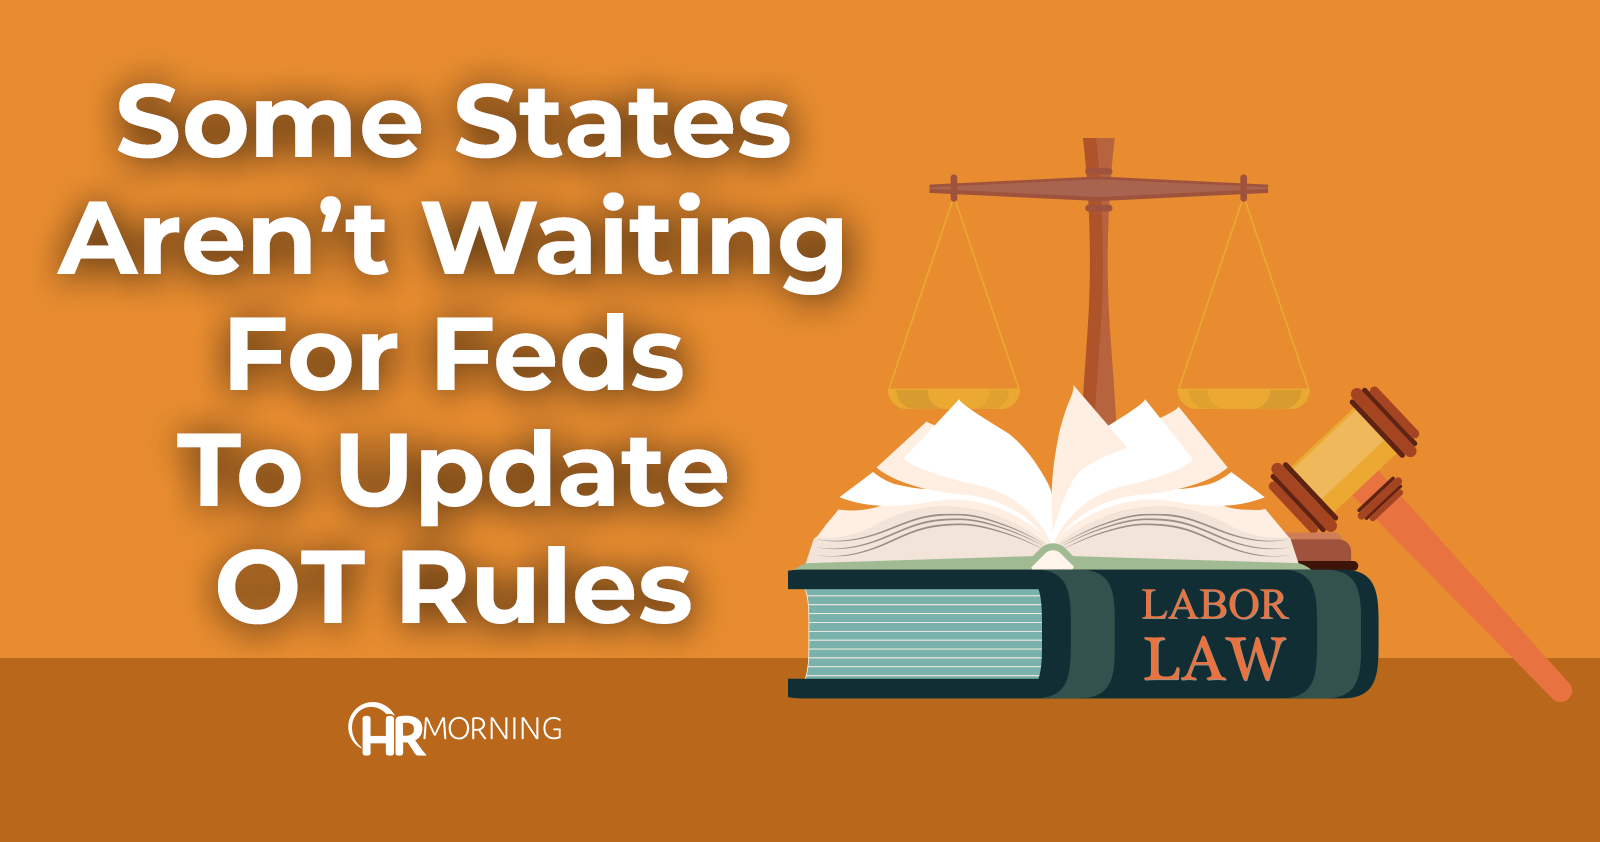 some states aren't waiting for feds to update OT rules